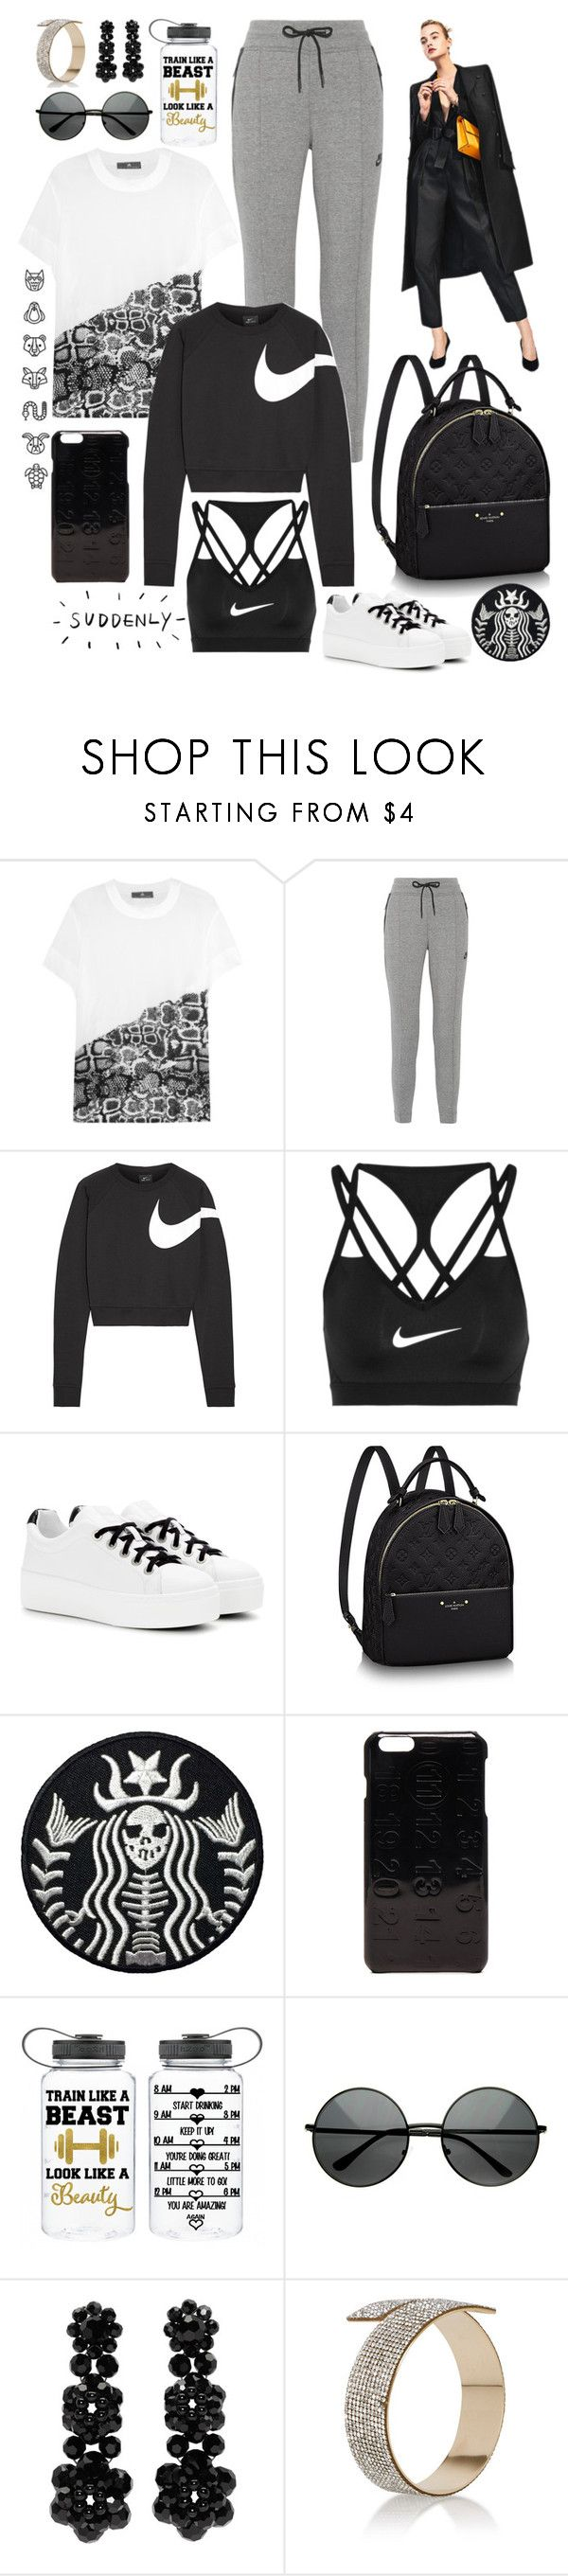 """""""Suddenly"""" by cherieaustin ❤ liked on Polyvore featuring adidas, NIKE, Kenzo, Maison Margiela and Simone Rocha"""